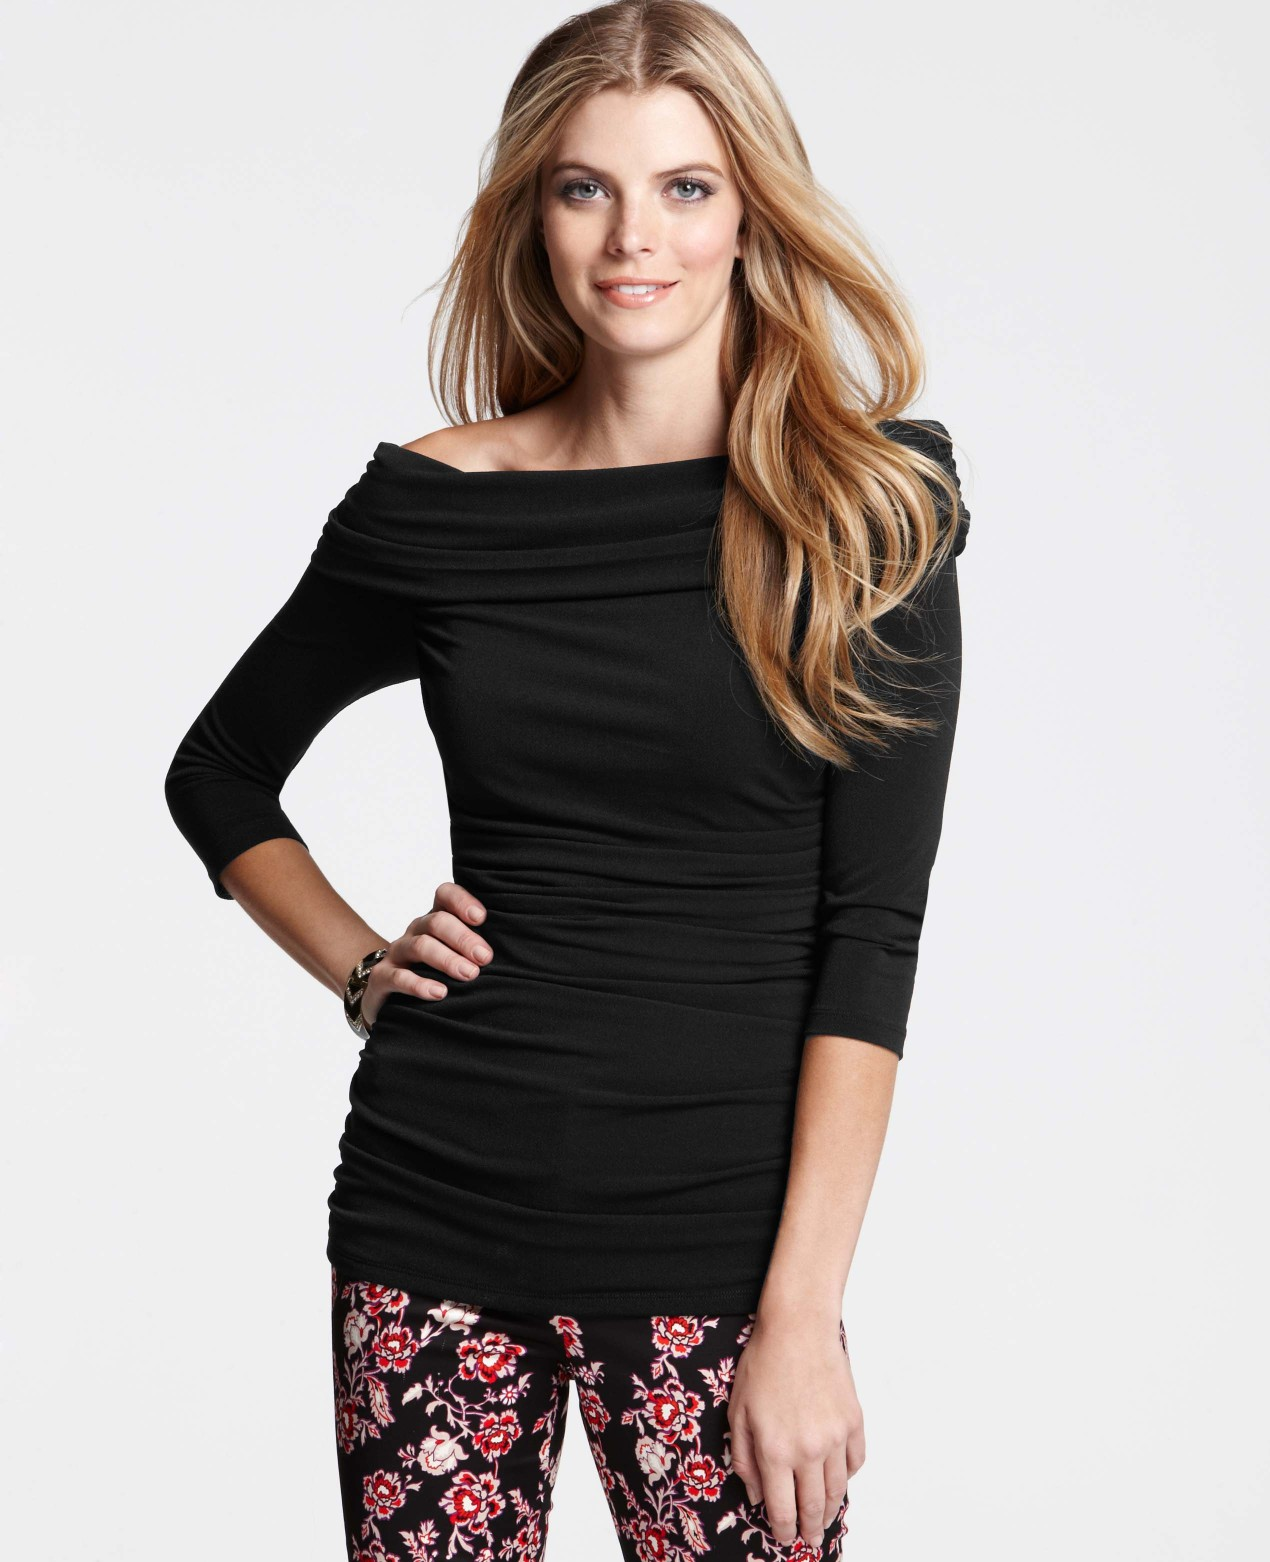 bbd0cc56dbe02 Lyst - Ann Taylor Ruched Off The Shoulder Top in Black